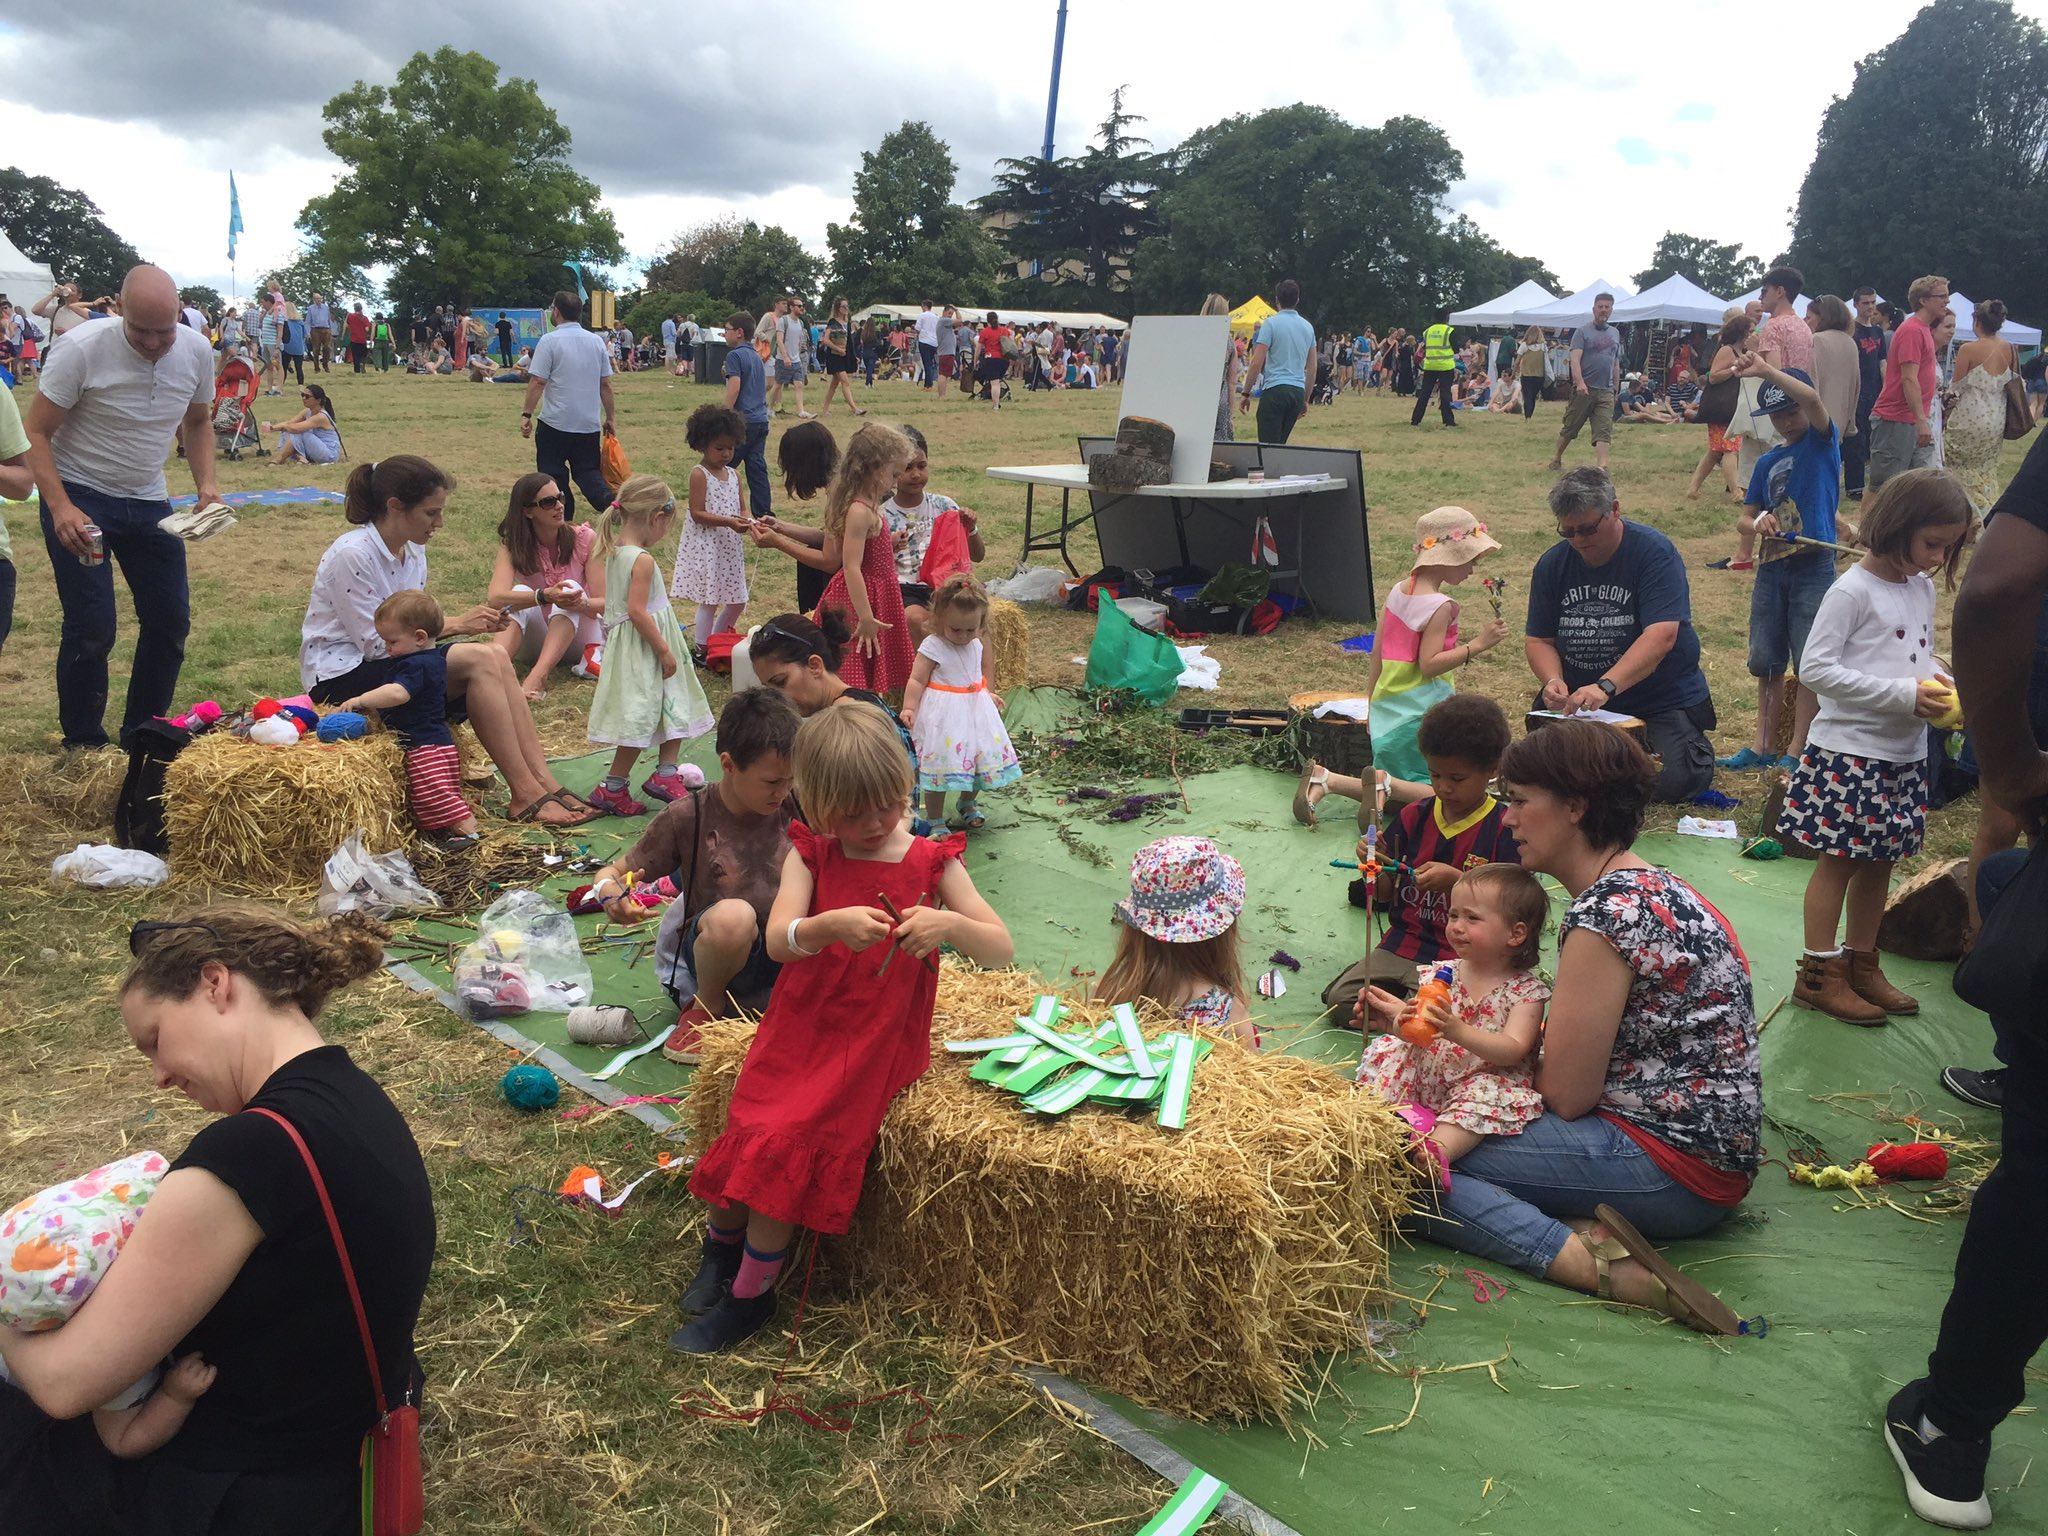 #naturalthinkers & @EdibleLambeth @lblcountryshow - the perfect combination for engaging children & families! https://t.co/sX9hPlFtUn